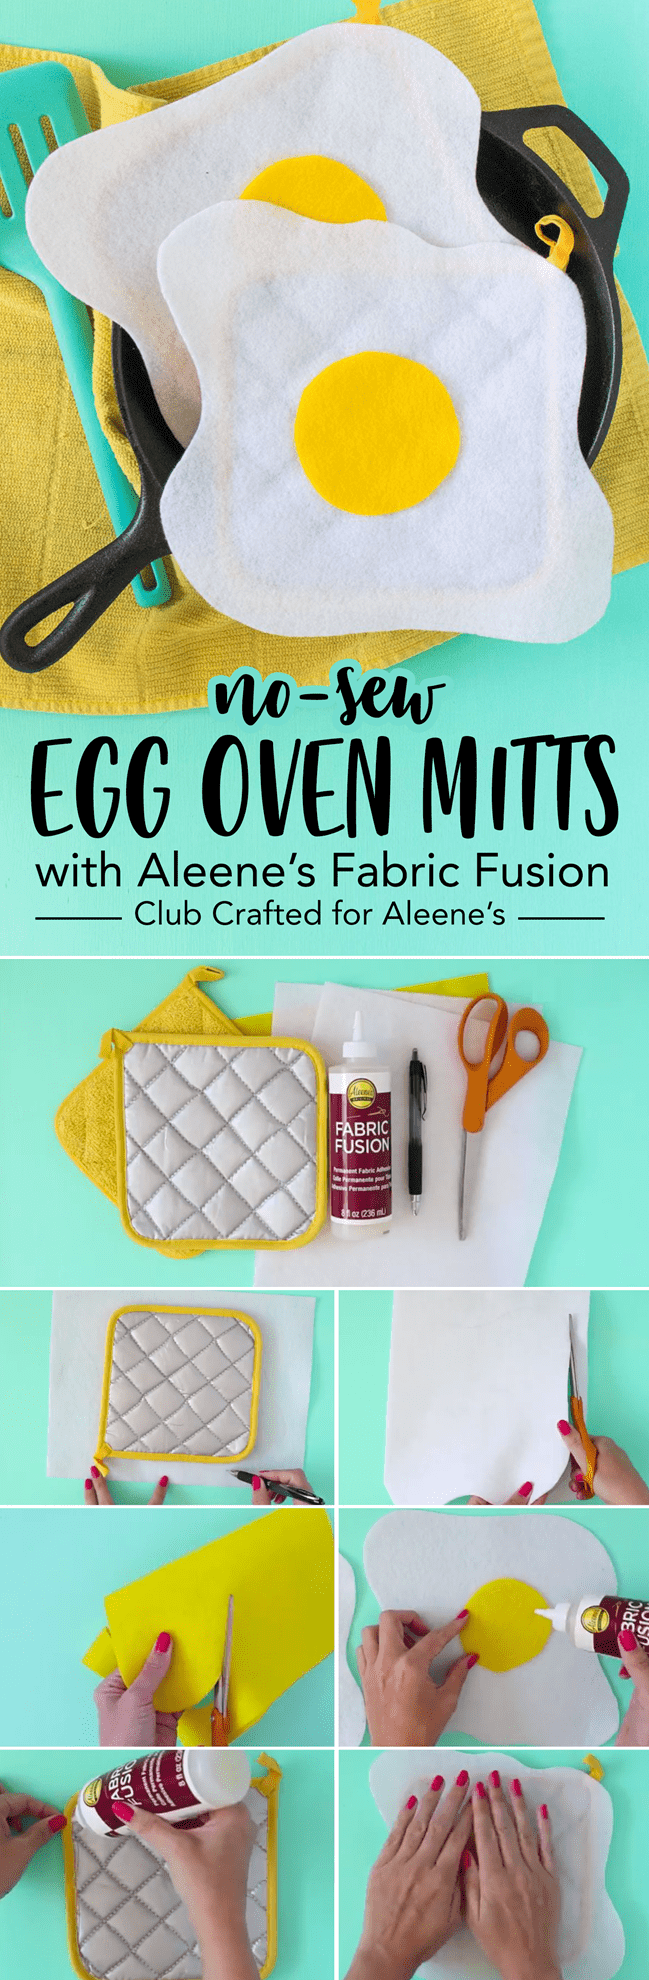 DIY No-Sew Fried Egg Mitts Step 3